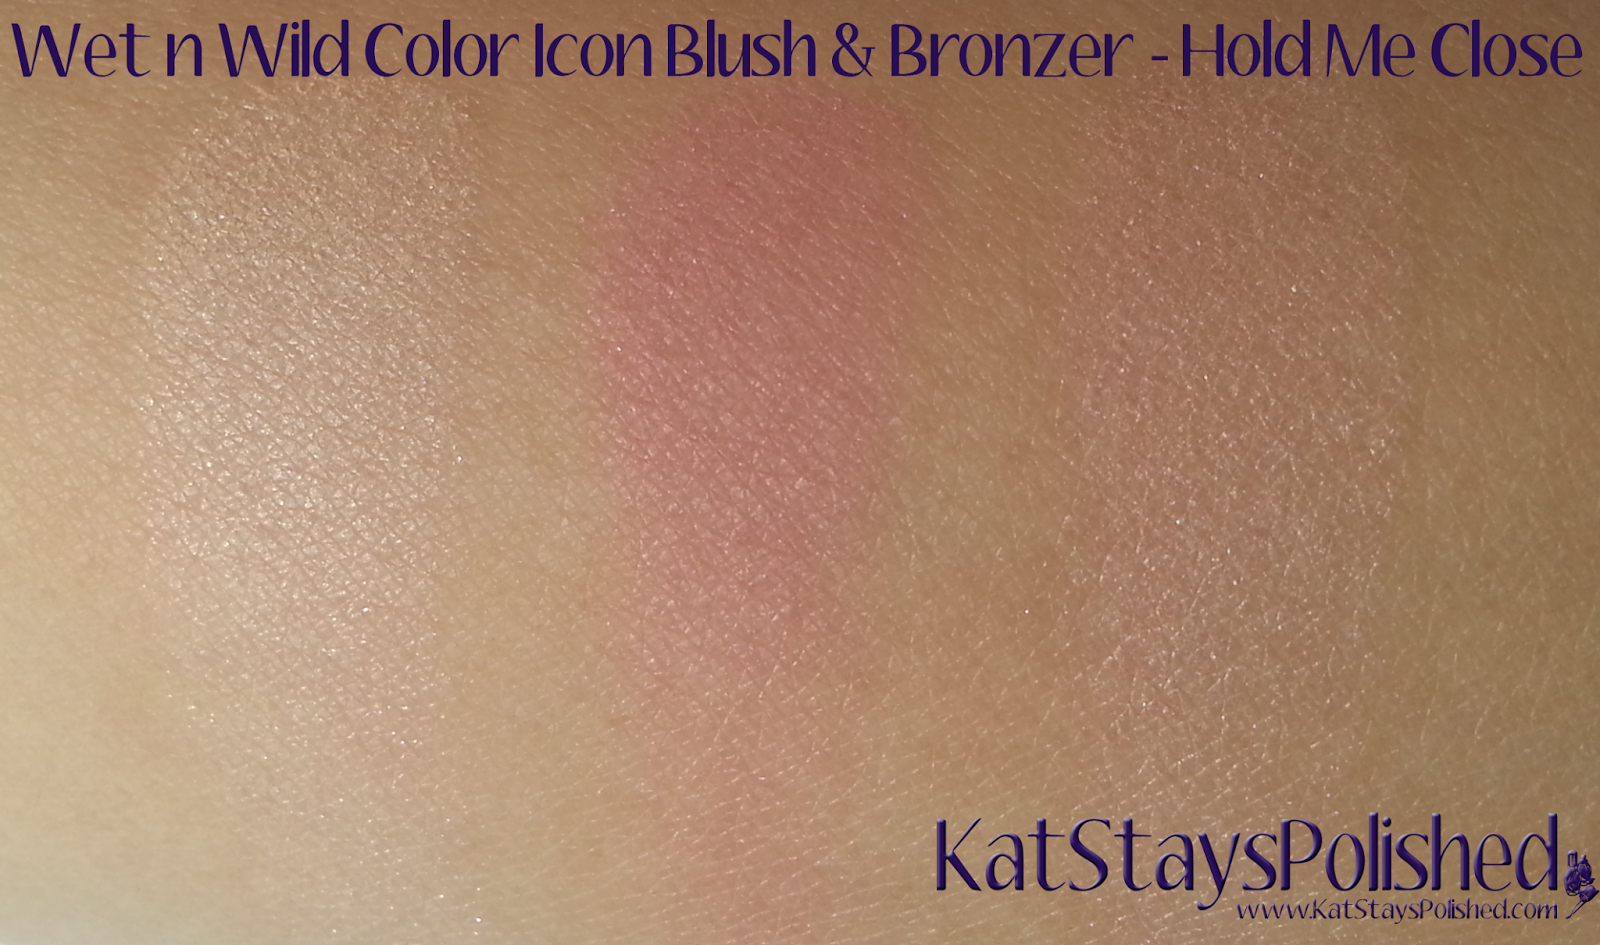 Wet n Wild ColorIcon Bronzer & Blush - Summer 2014 - Hold Me Close | Kat Stays Polished